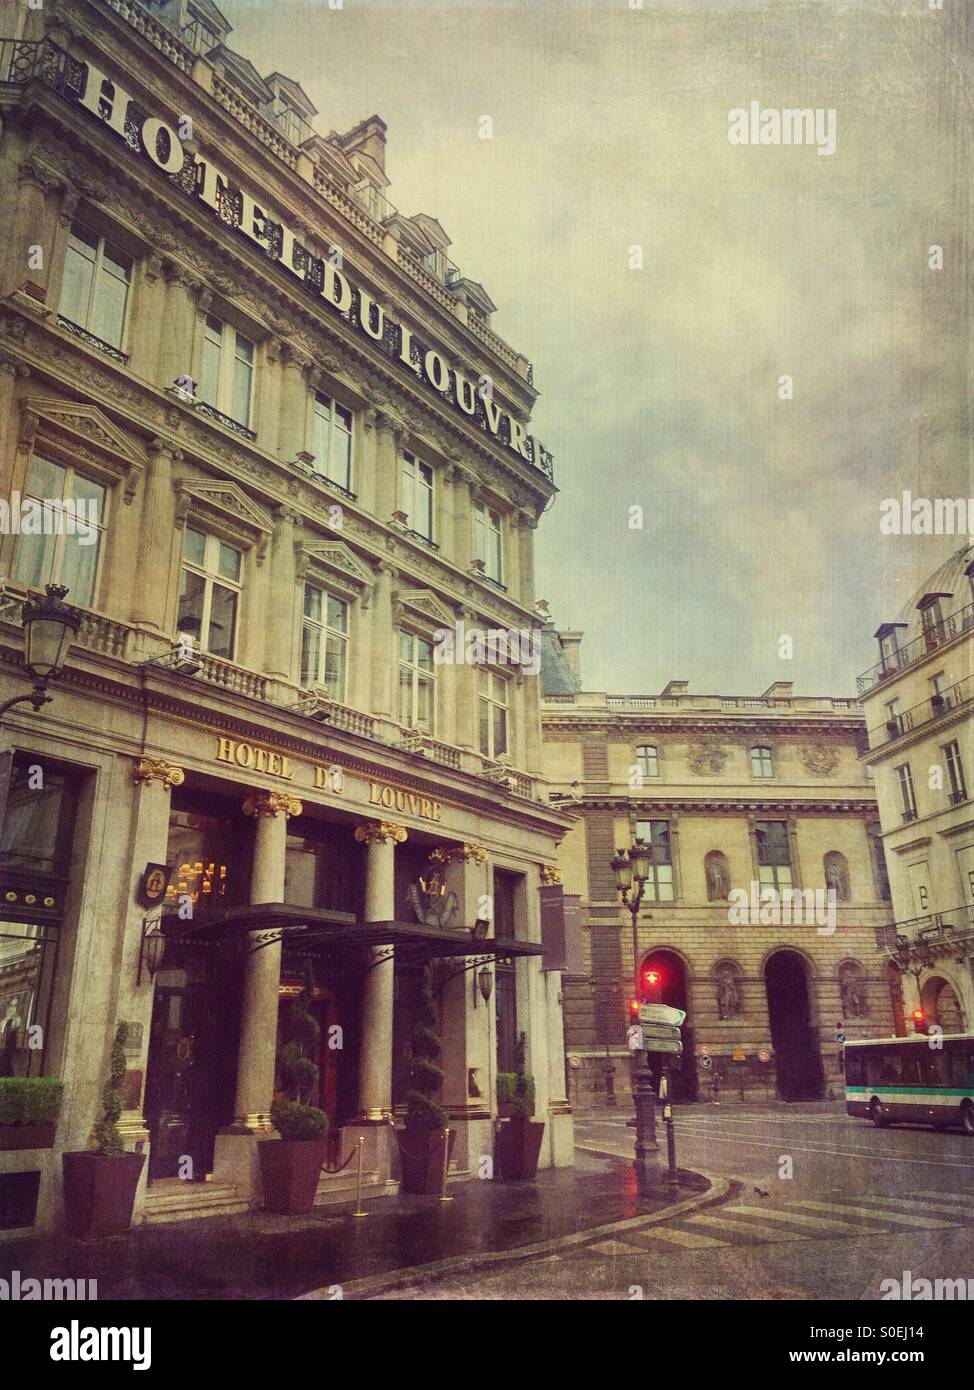 View of Hotel du Louvre, a Hyatt 5 star hotel located in the historic centre of Paris, France. Antique, retro look Stock Photo